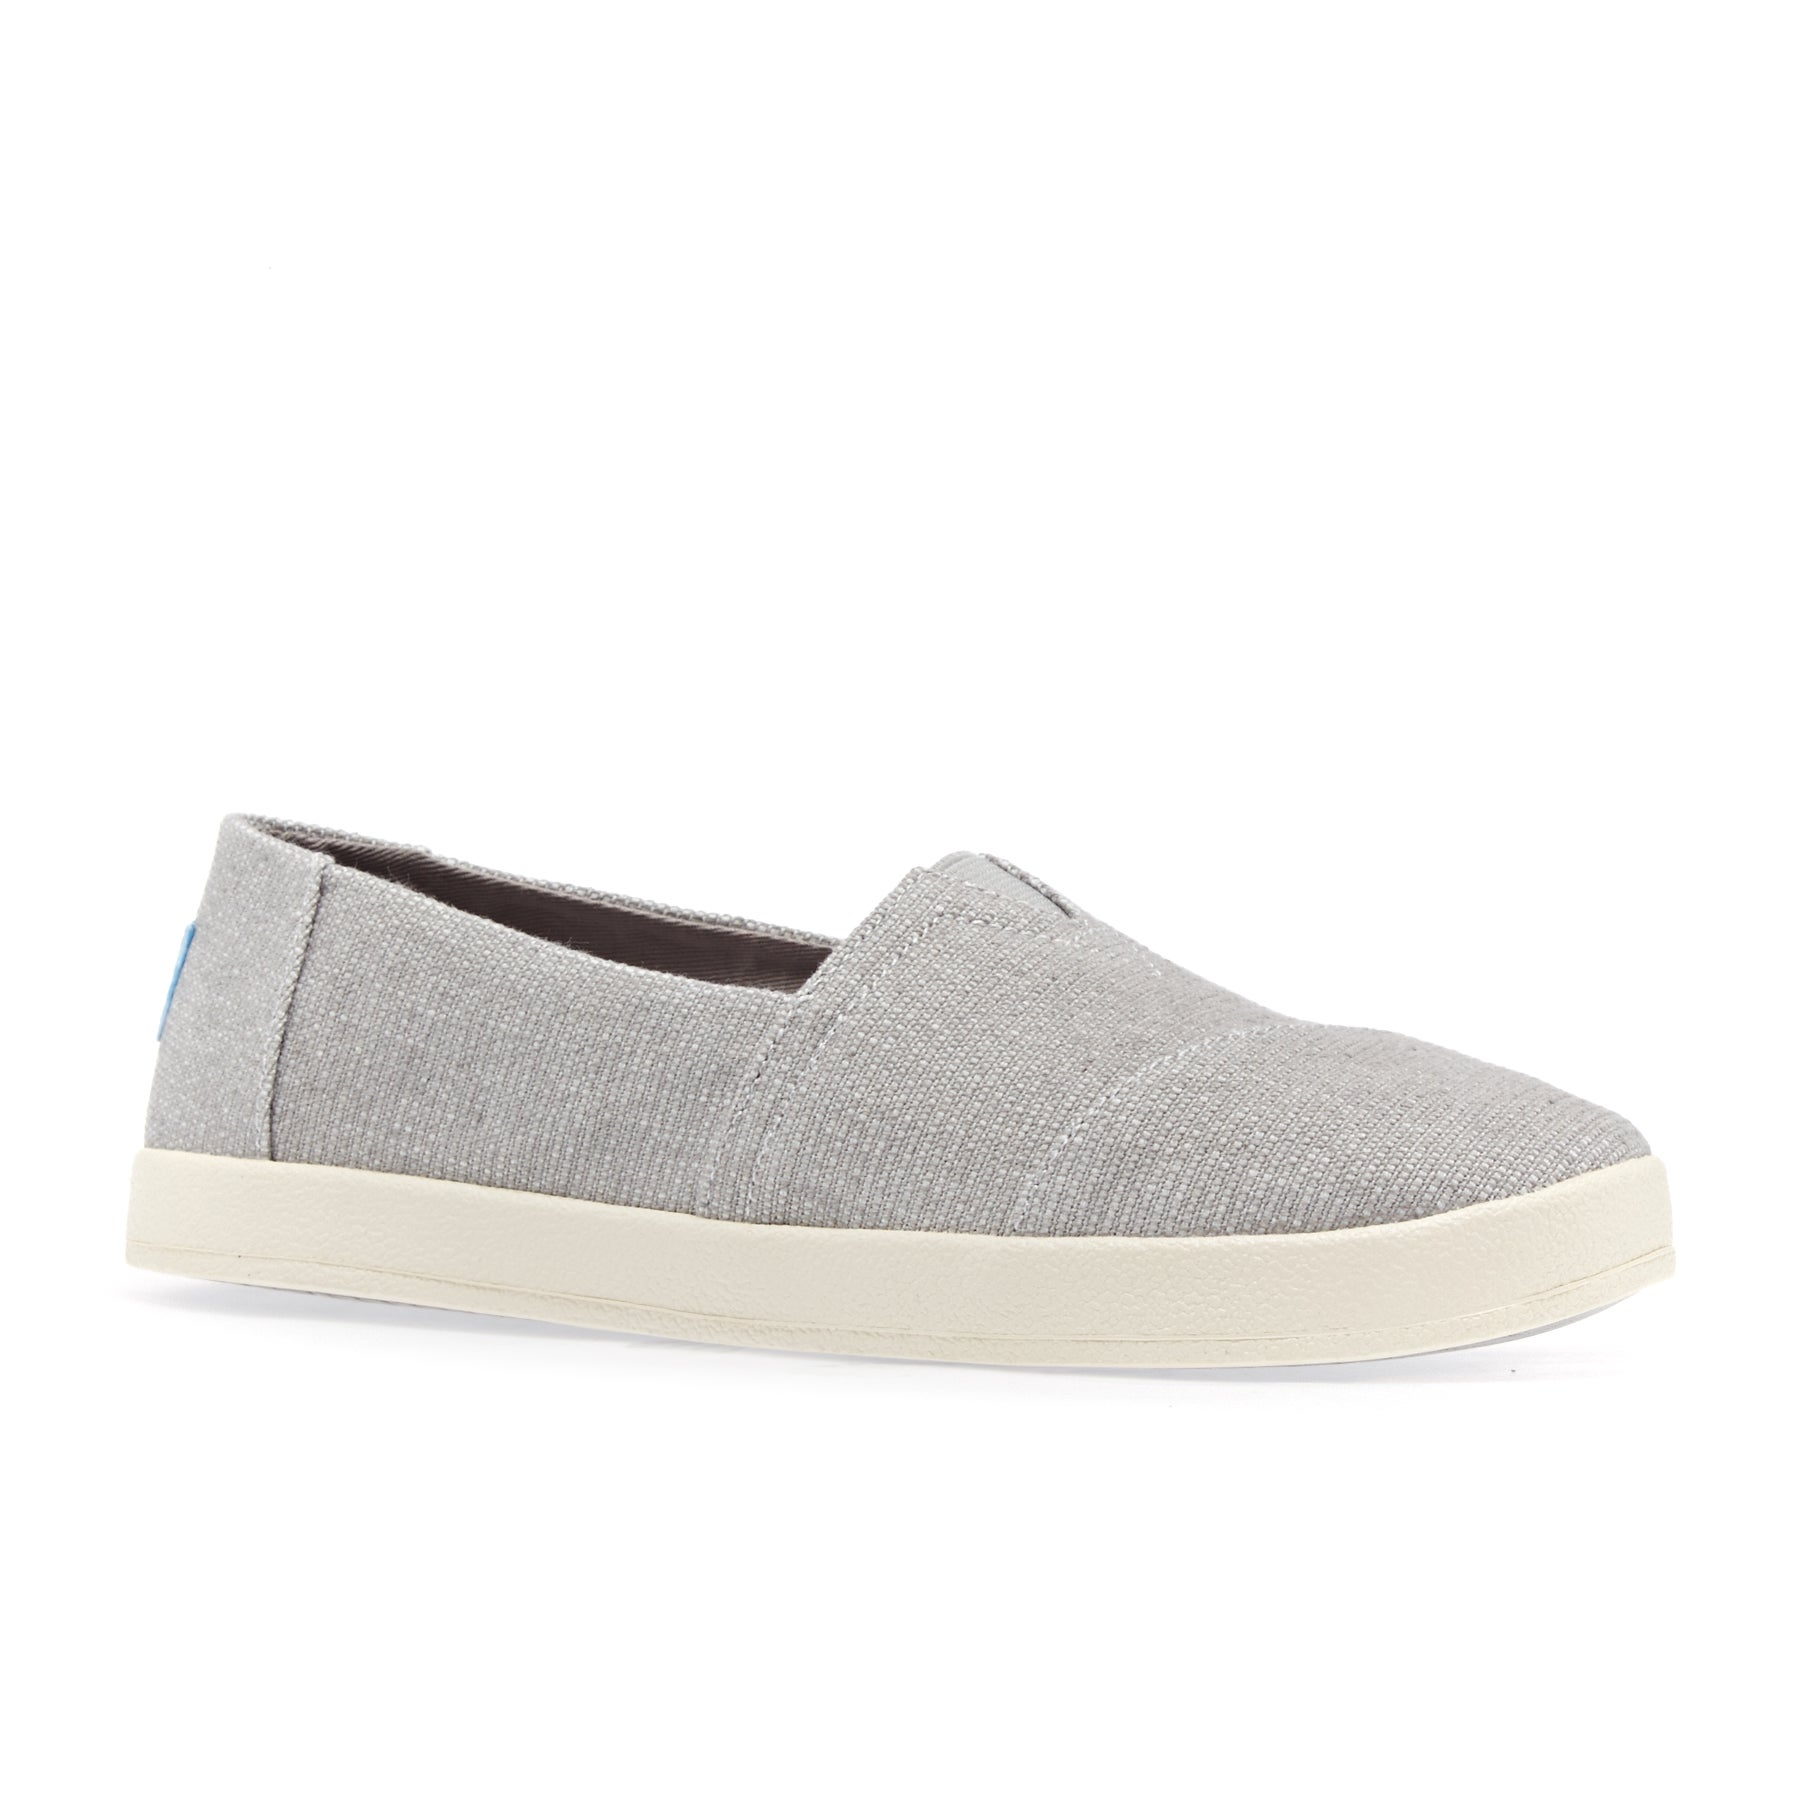 Toms Avalon Womens Slip On Shoes - Grey